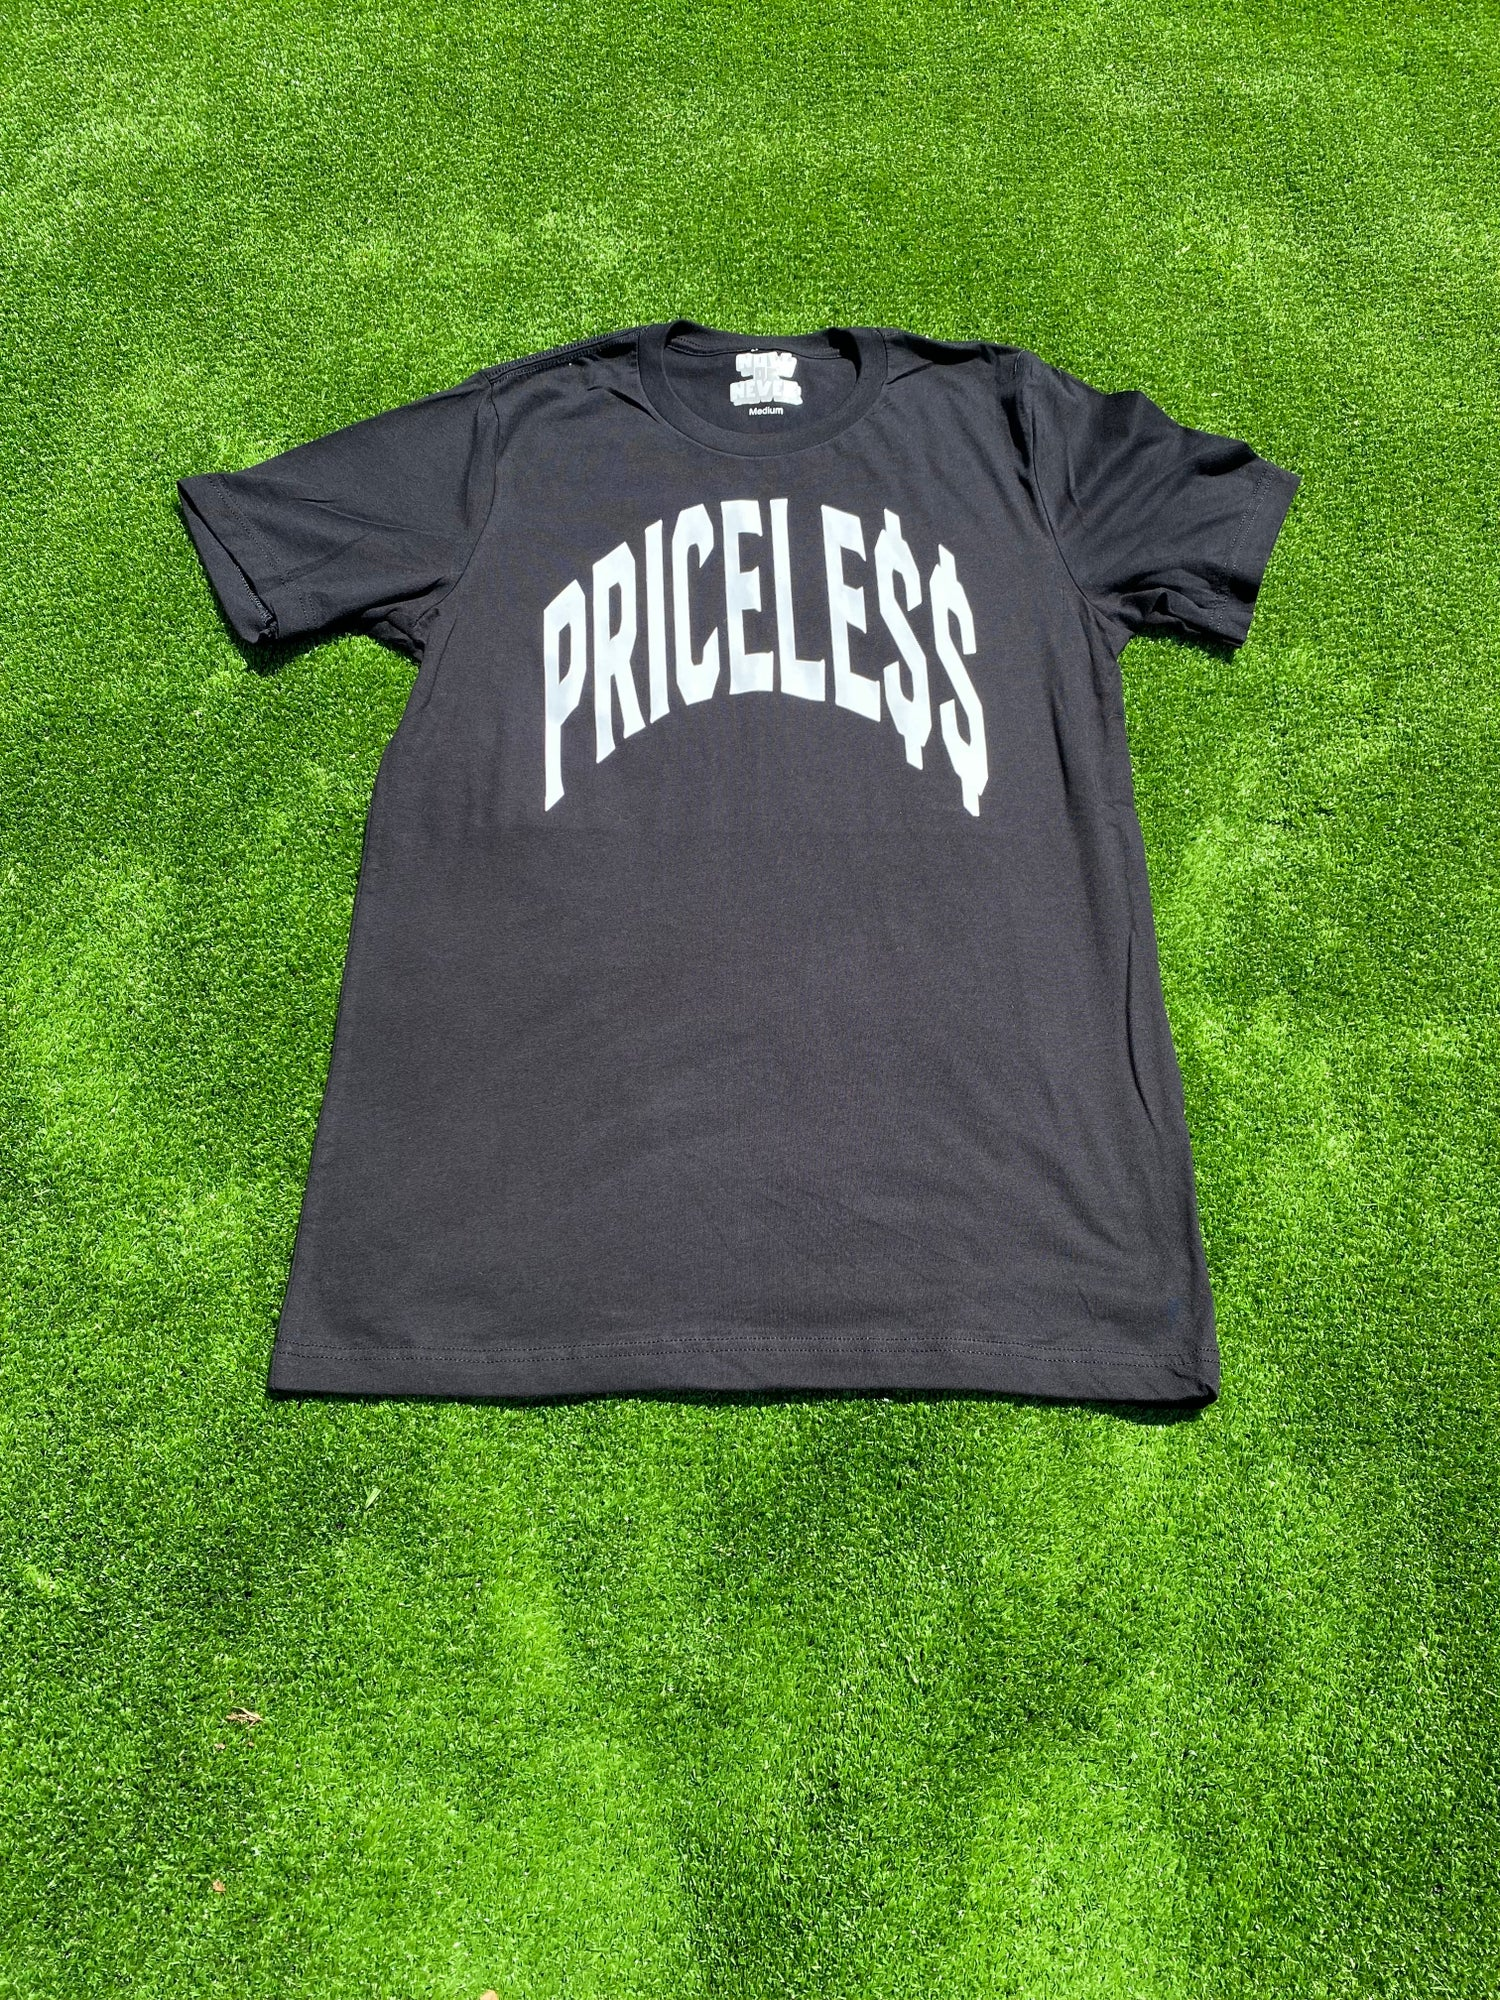 Your life is pricele$$ bold print T-shirt black with white print